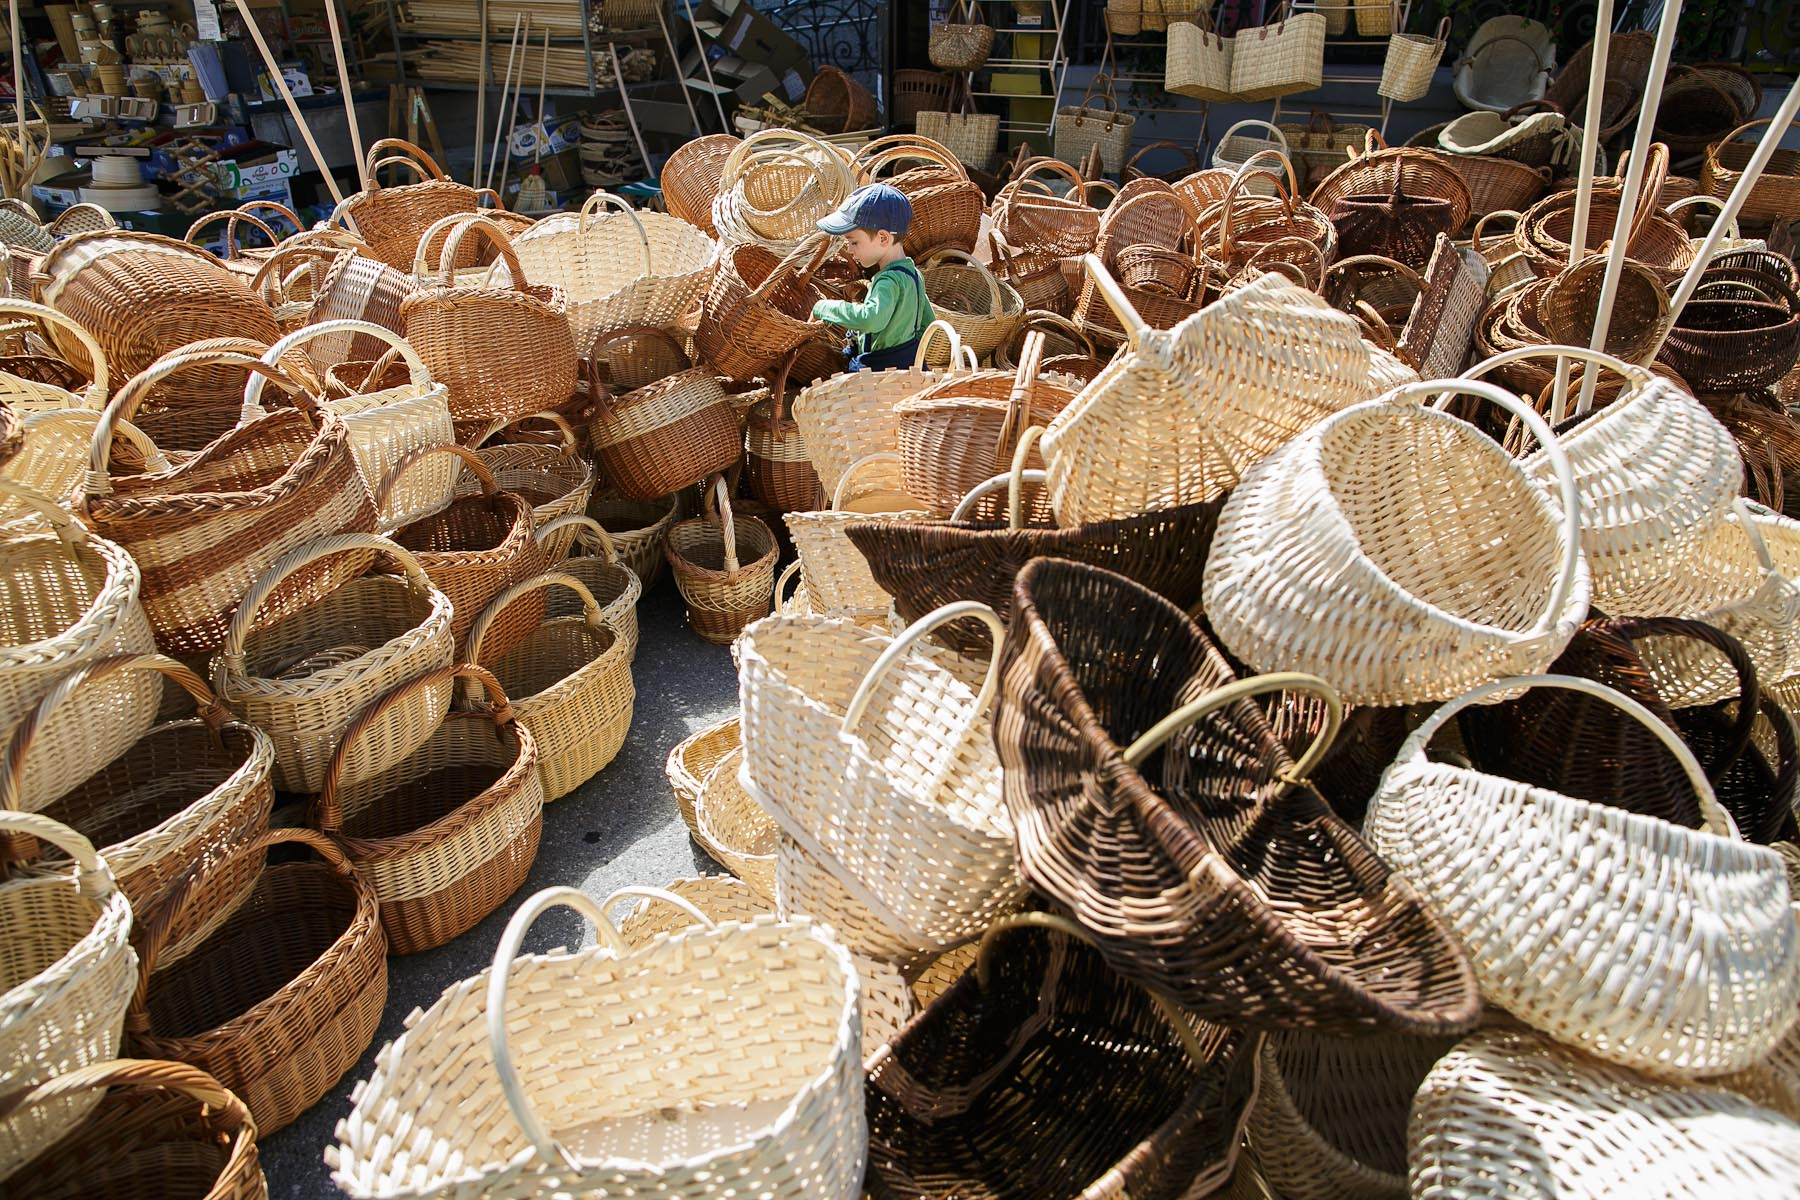 A boy observes wooden baskets at the 40th traditional woodenware fair in Ribnica, Slovenia, Sep. 6, 2015.